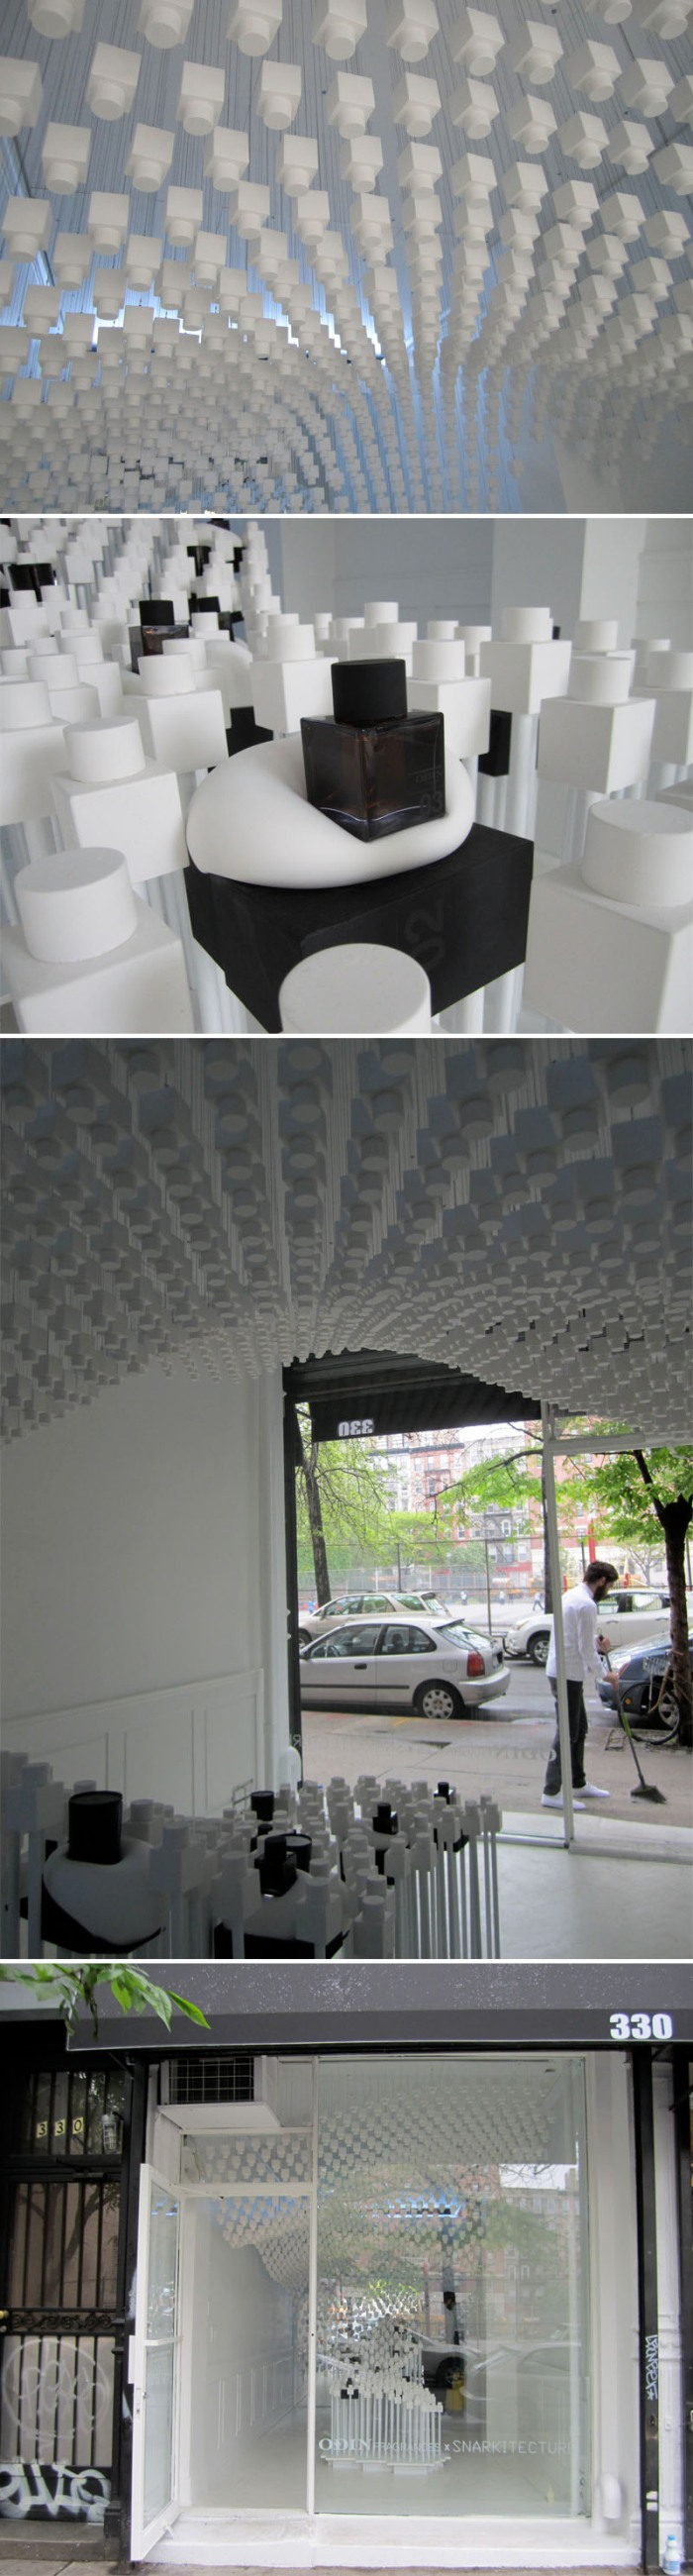 Snarkitecture, Daniel Arsham, Cool retail design for Odin Pop-up shop, NYC, collabcubed